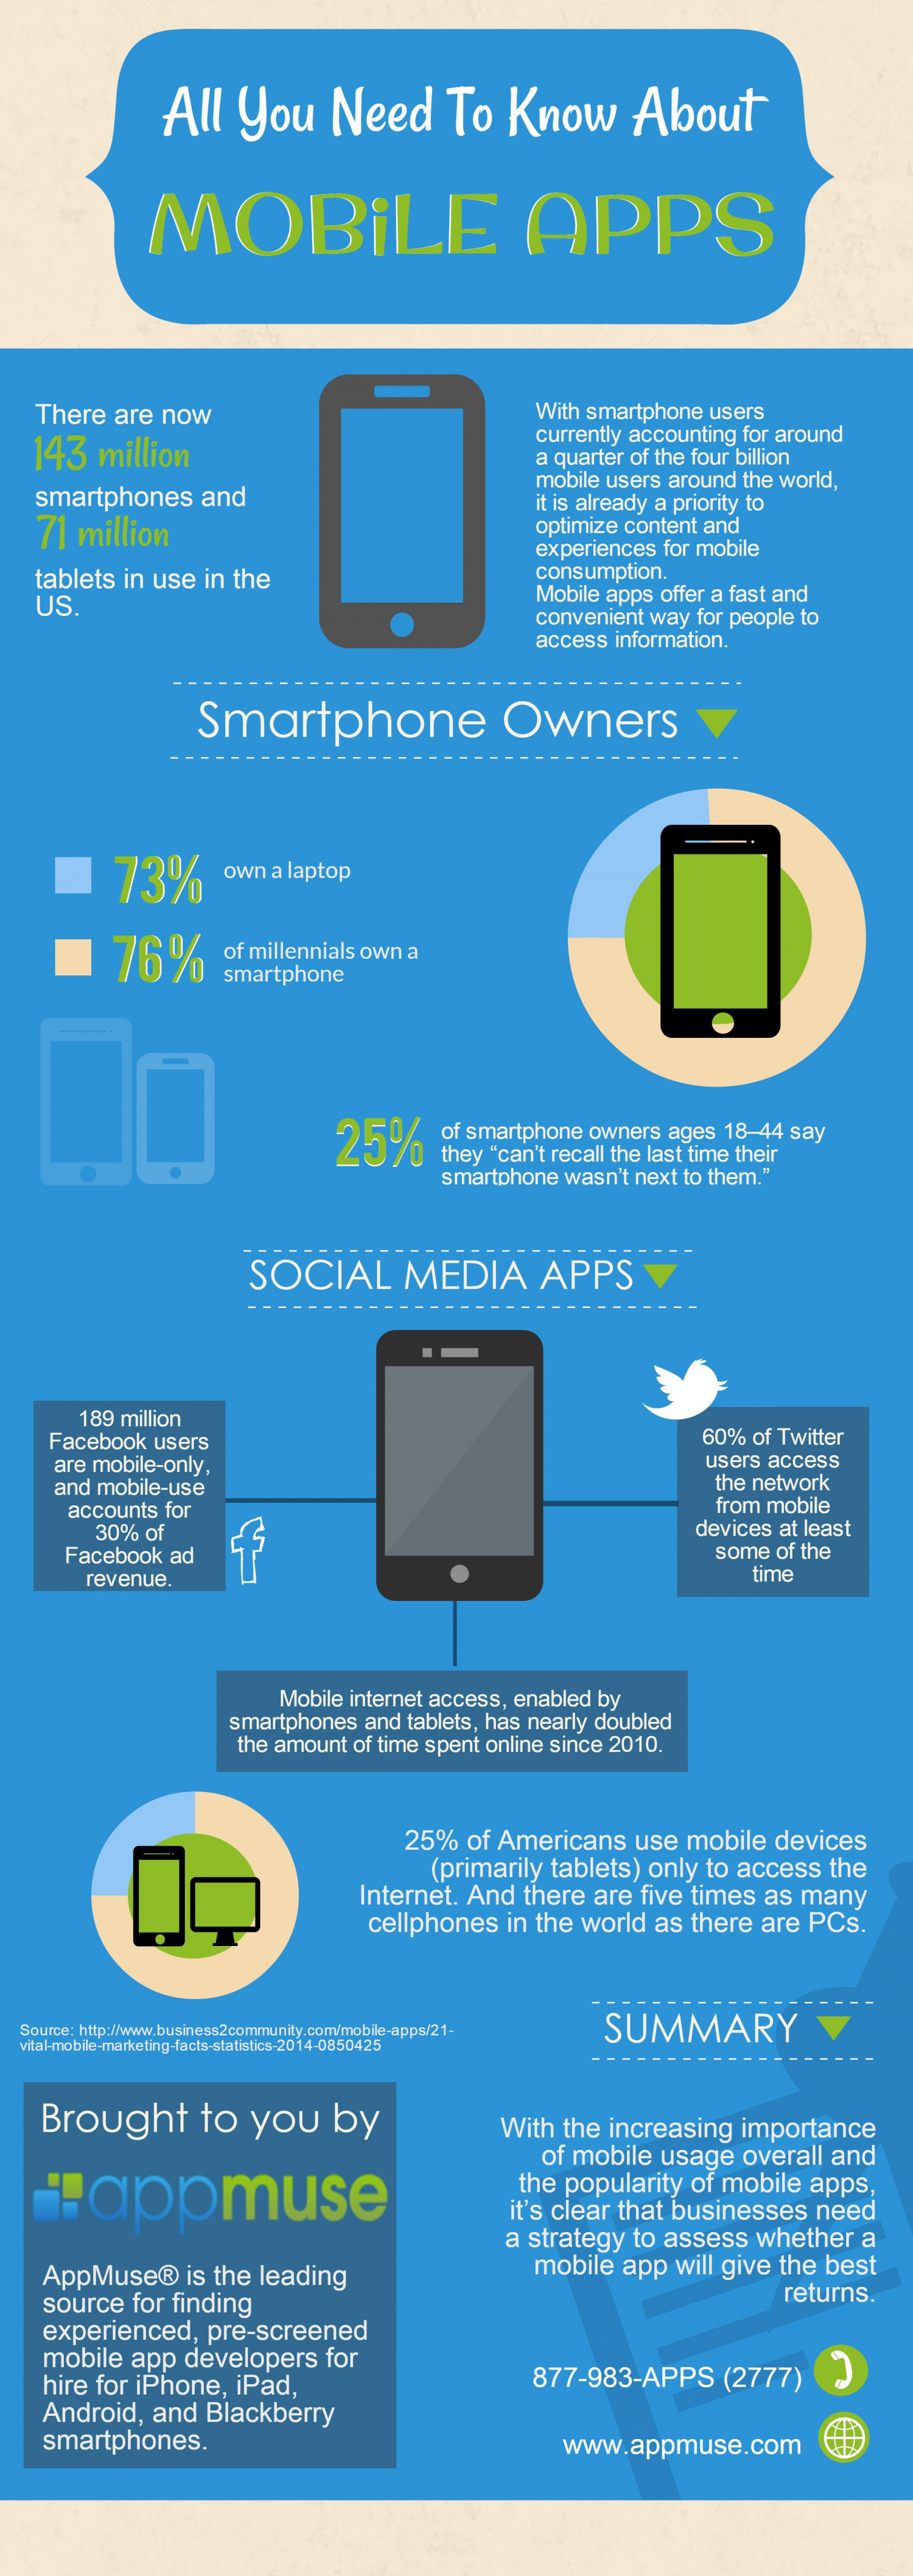 AppMuse | Mobile app developers | App development companies Infographic